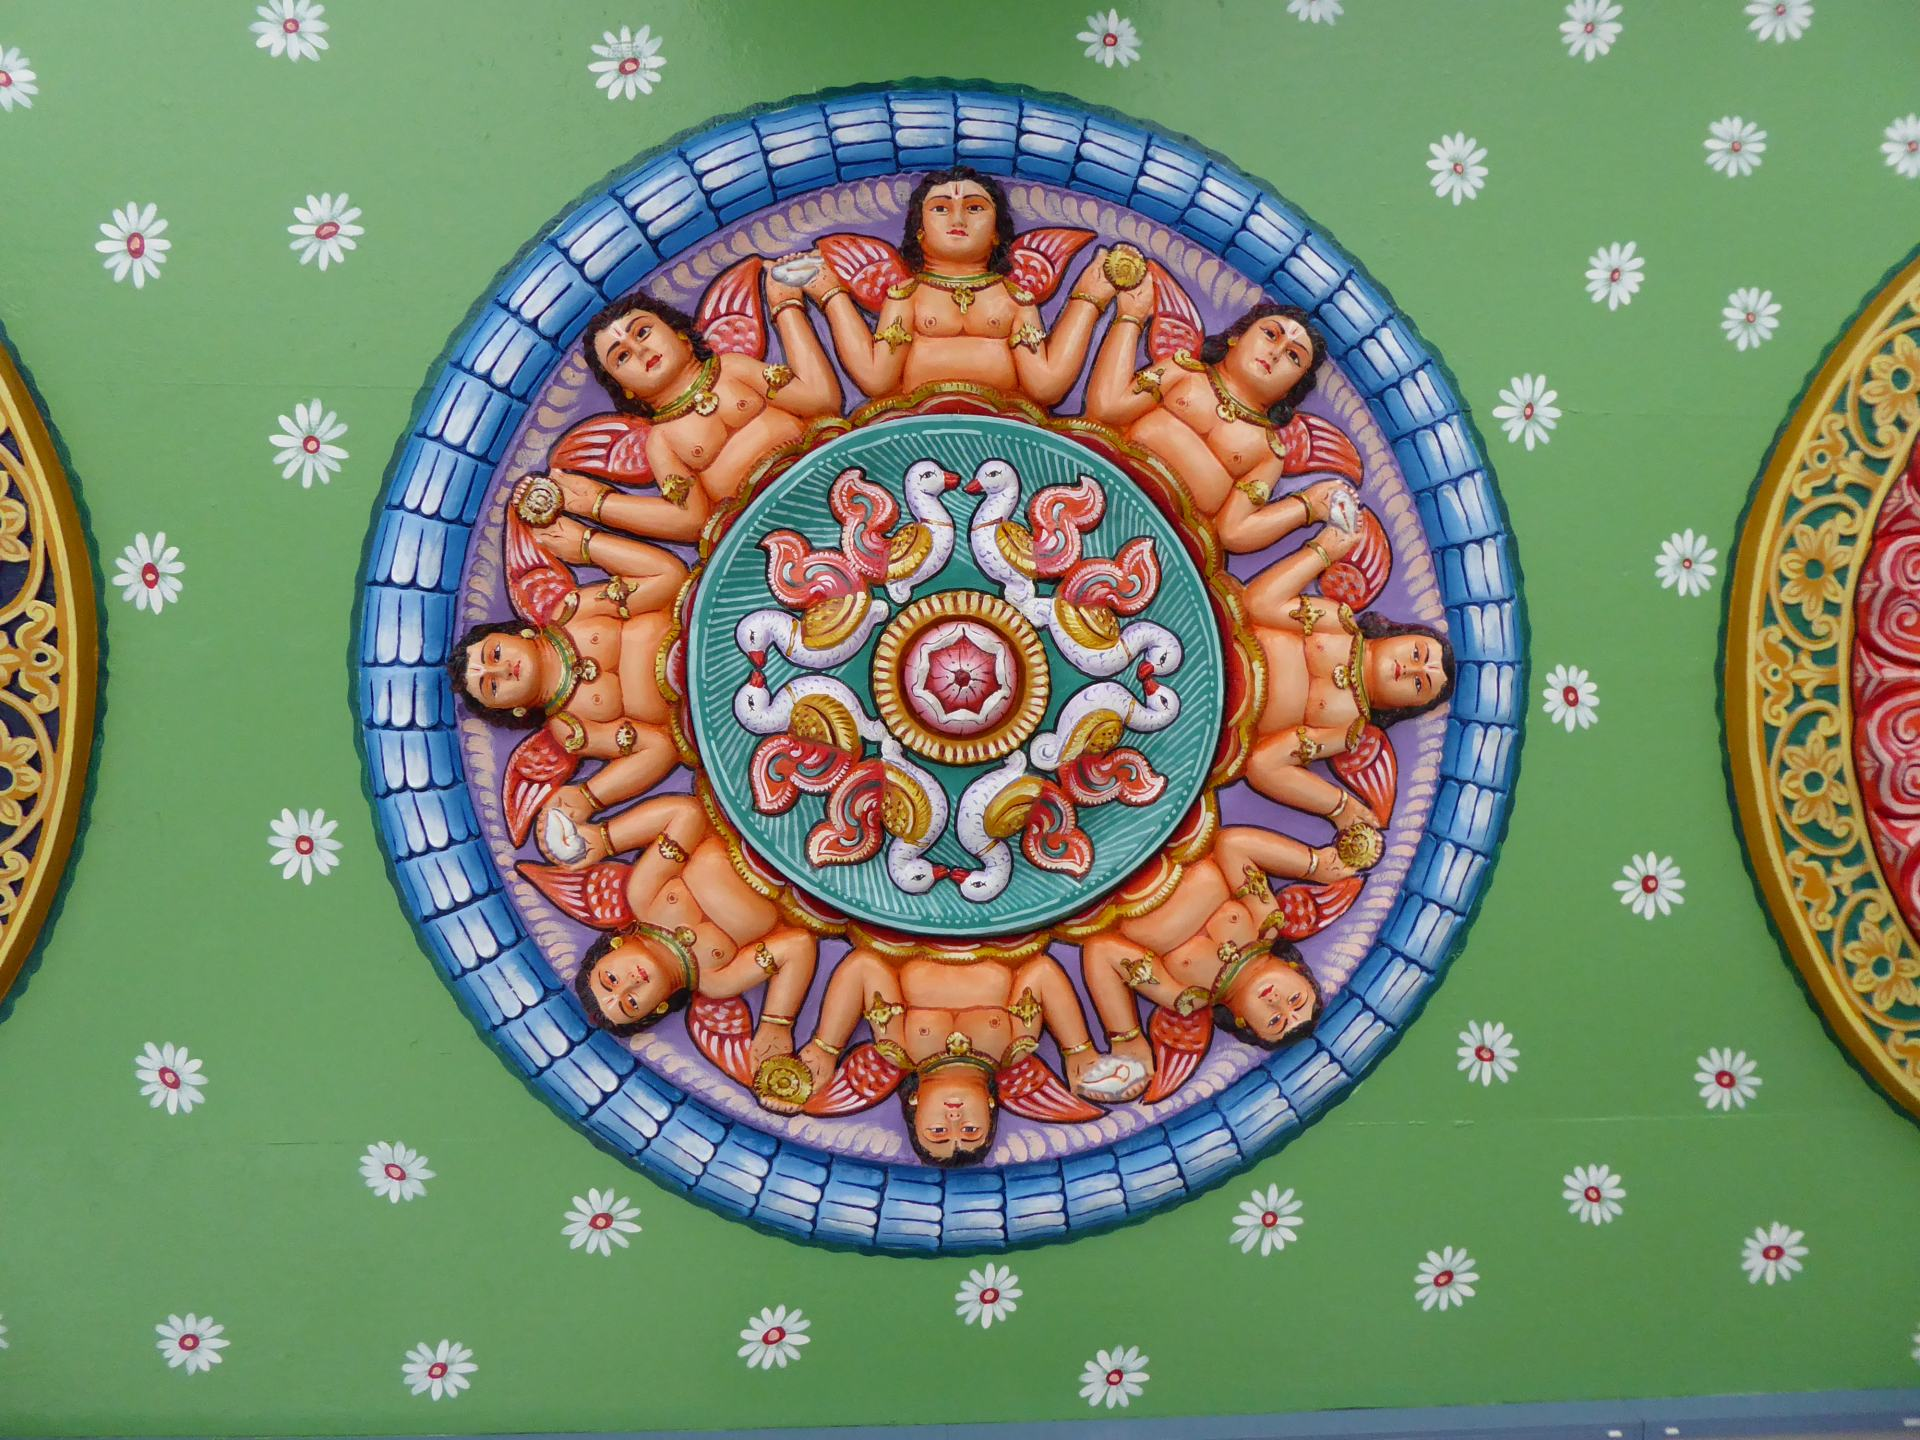 A round Hindu colourful image on the ceiling at Sri Srinivasa Perumal Temple.